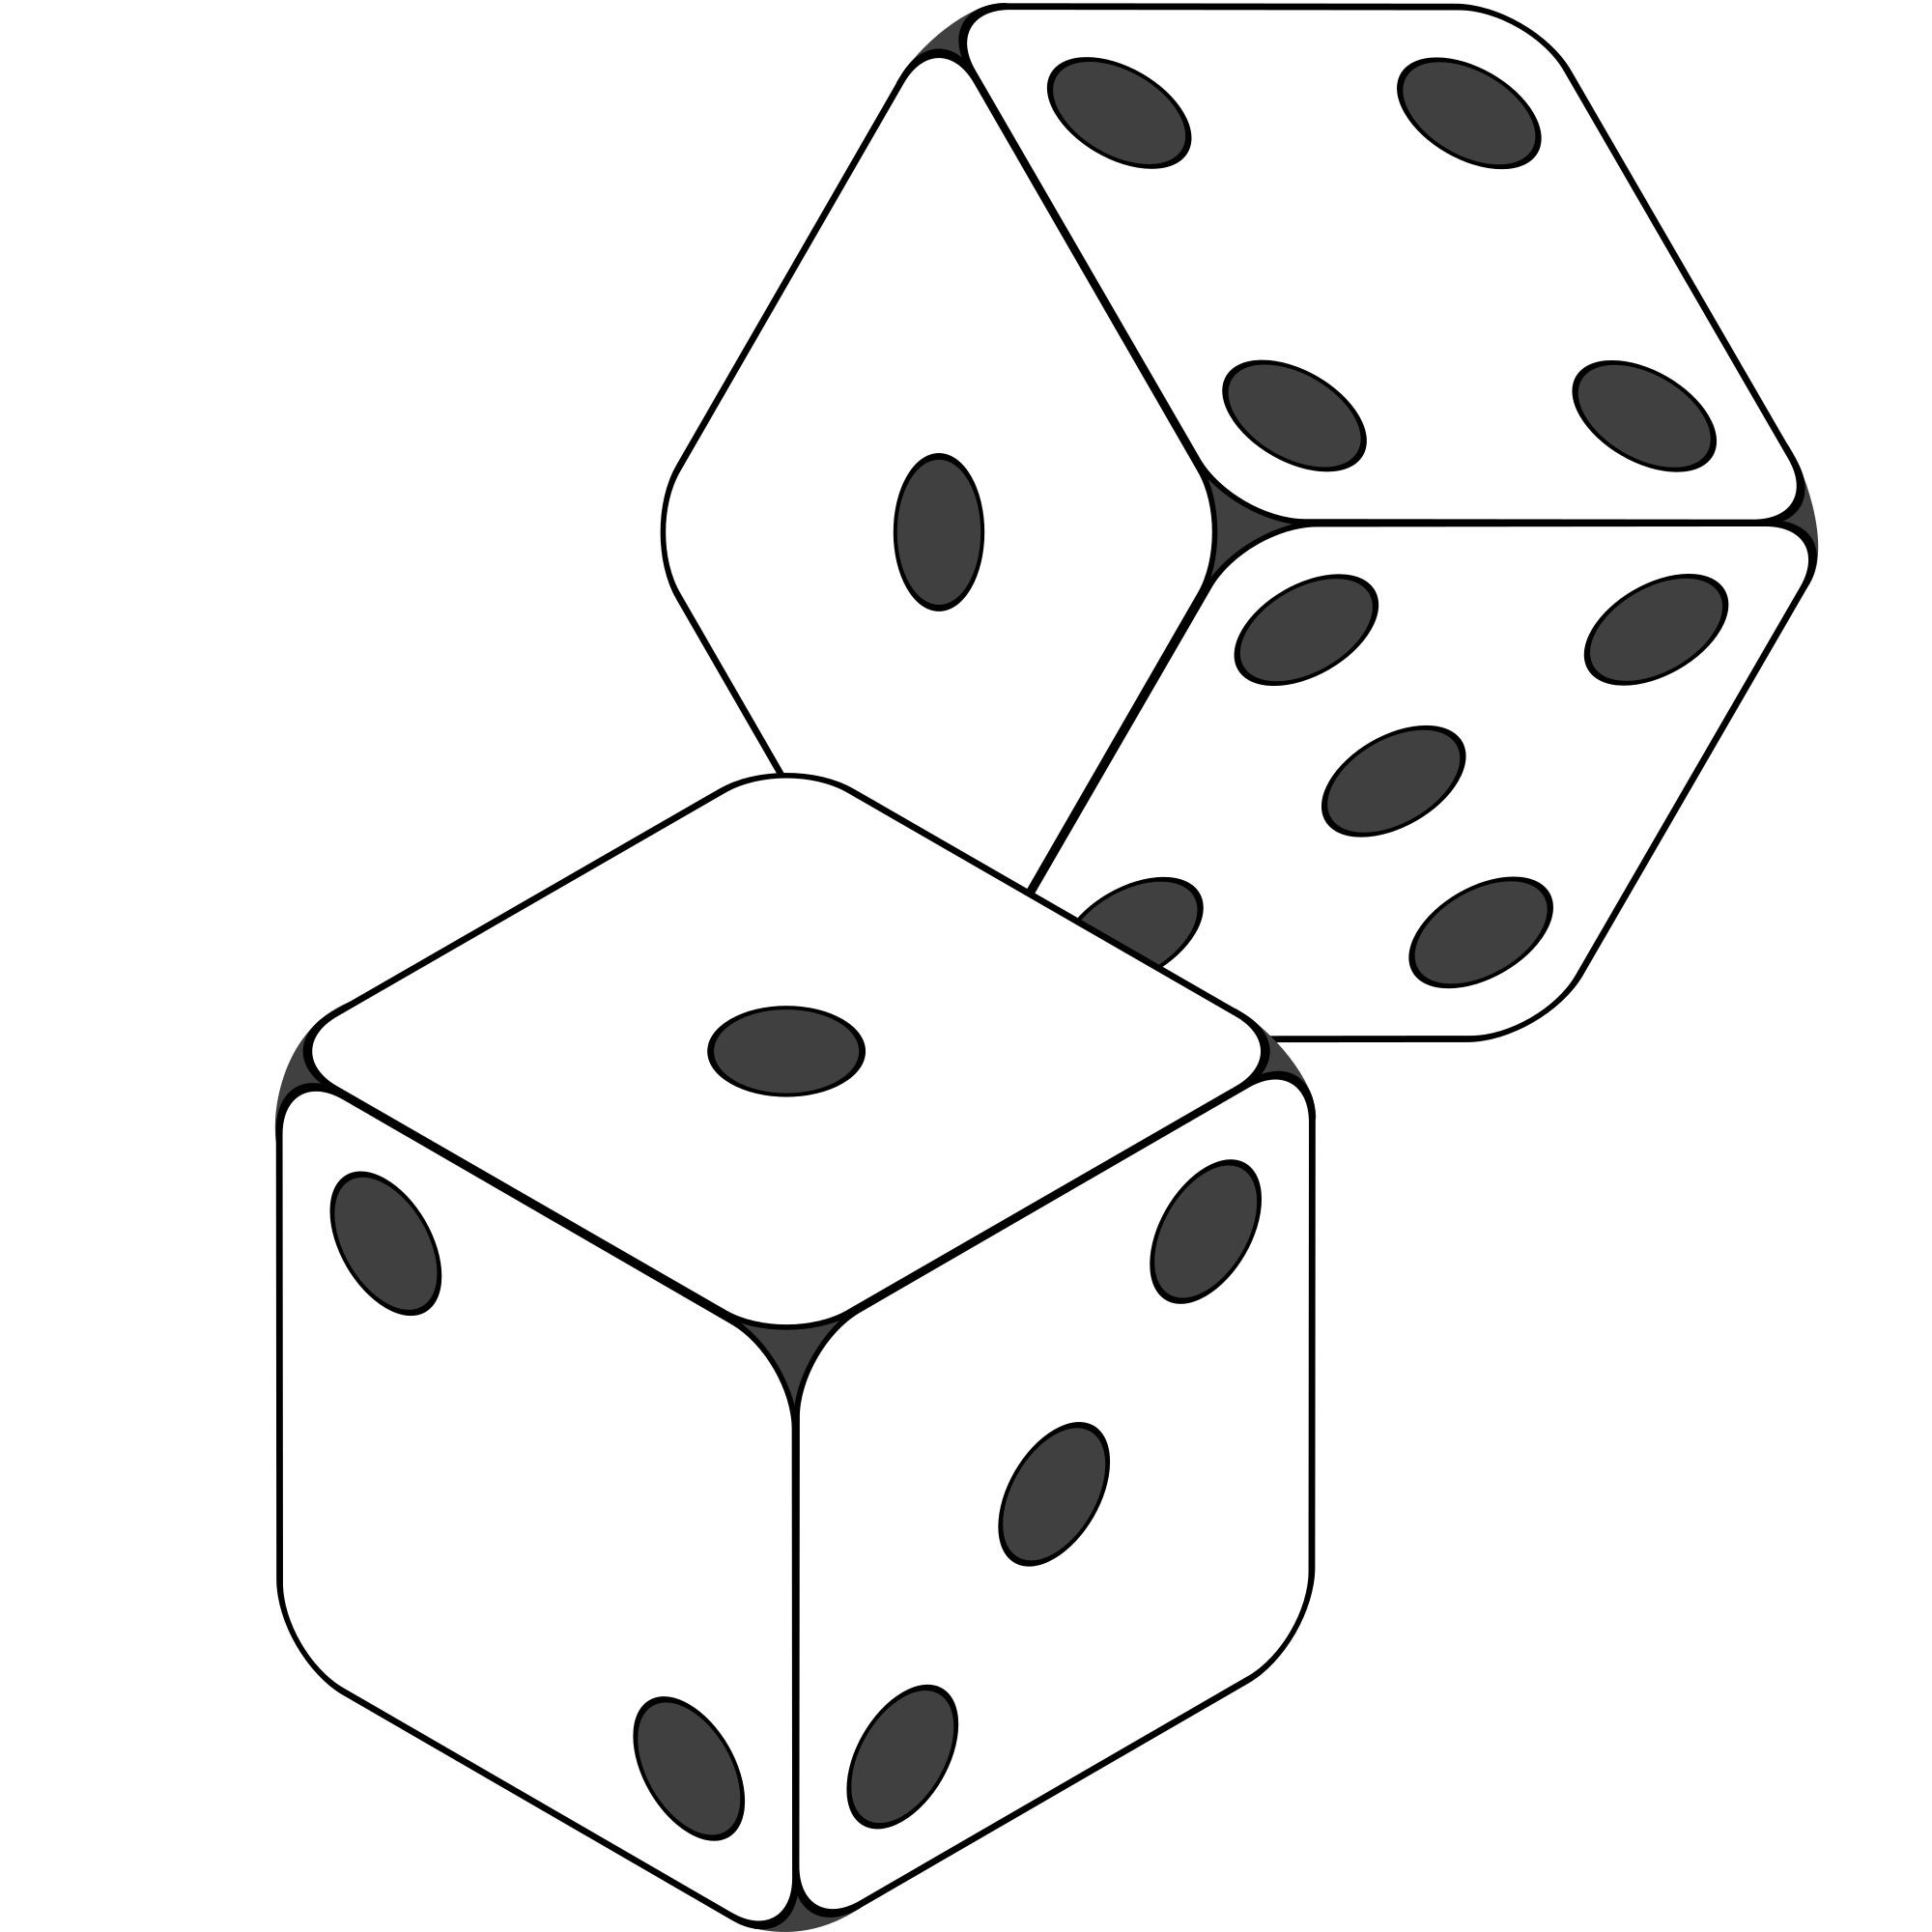 dice to print number 3 dice clipart black and white clipground print dice to